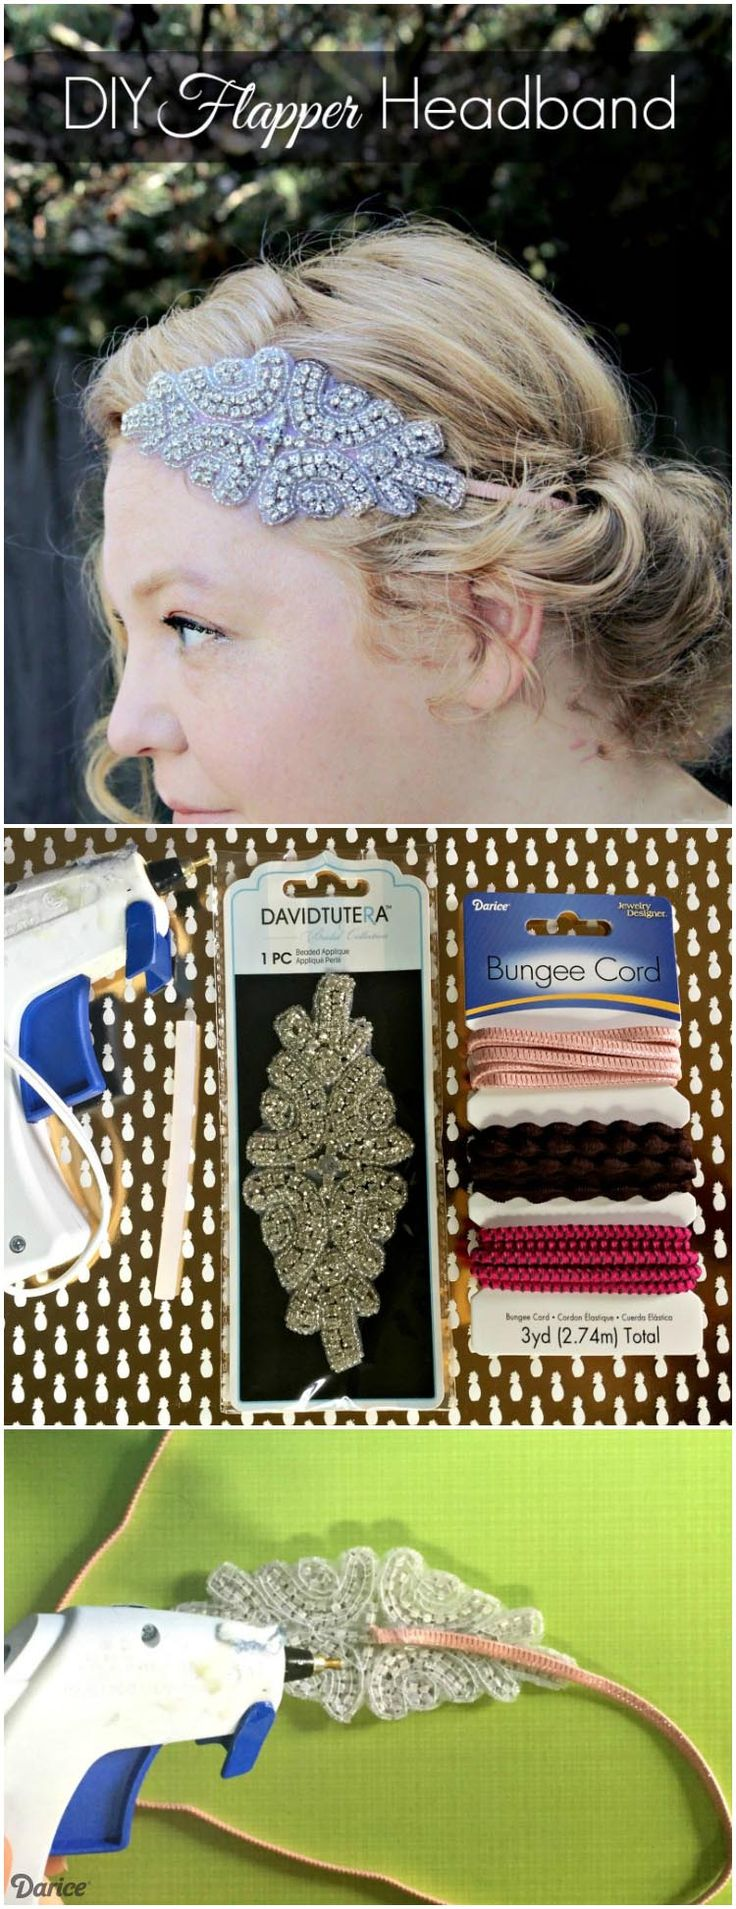 This easy DIY flapper headband is the perfect accessory for a 20's inspired wedding, prom, or bridesmaid look. Or rock it for an everyday, vintage look!